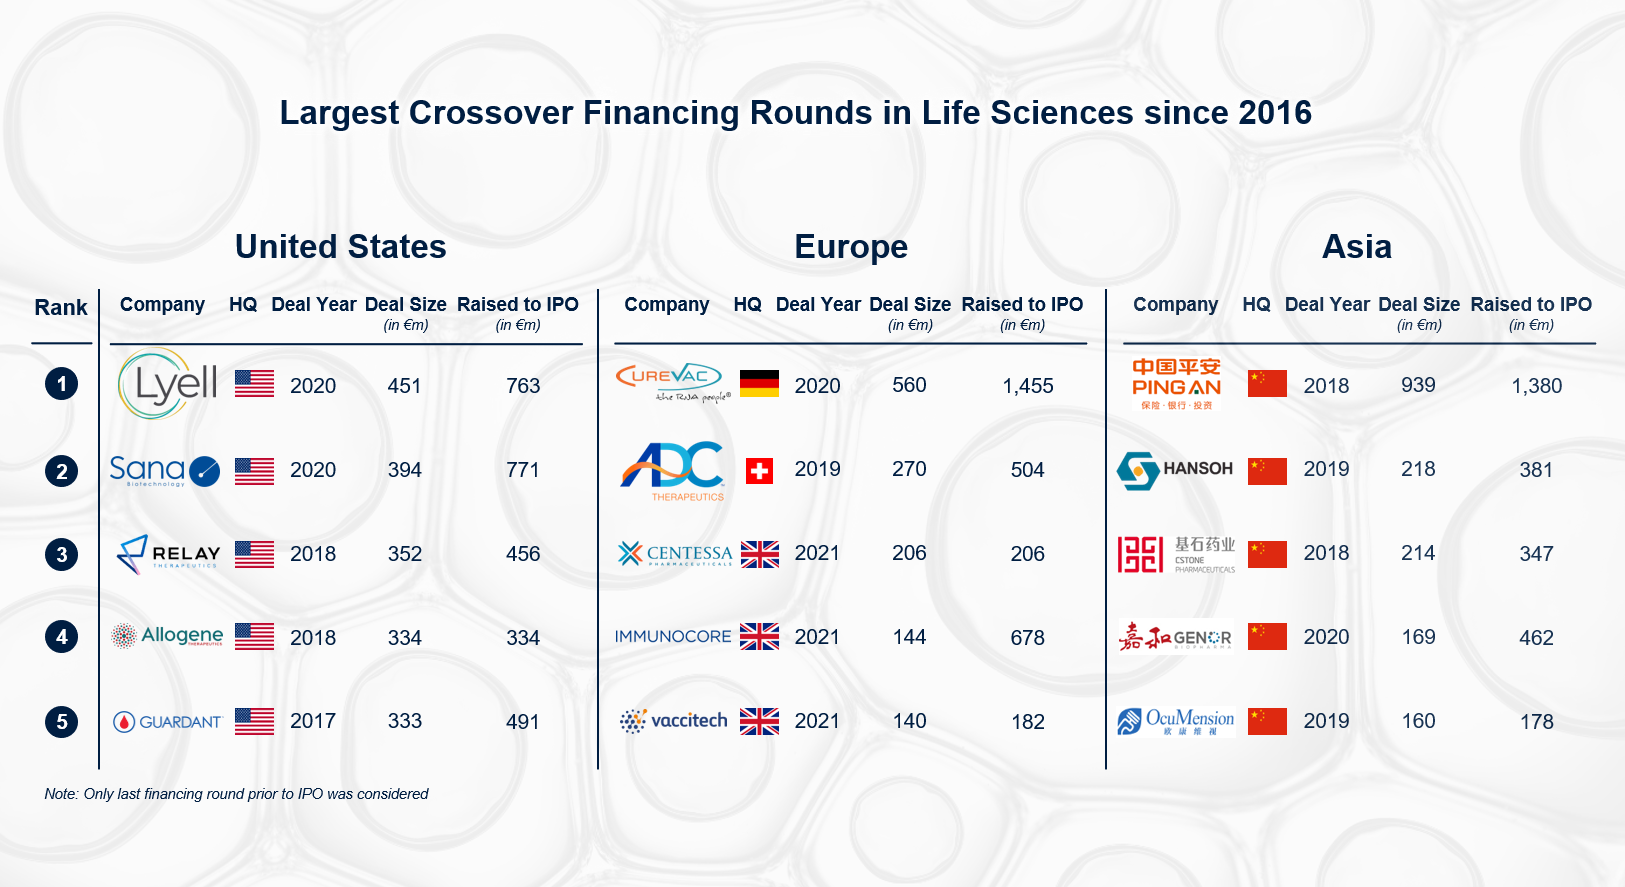 LARGEST CROSSOVER FINANCING ROUNDS